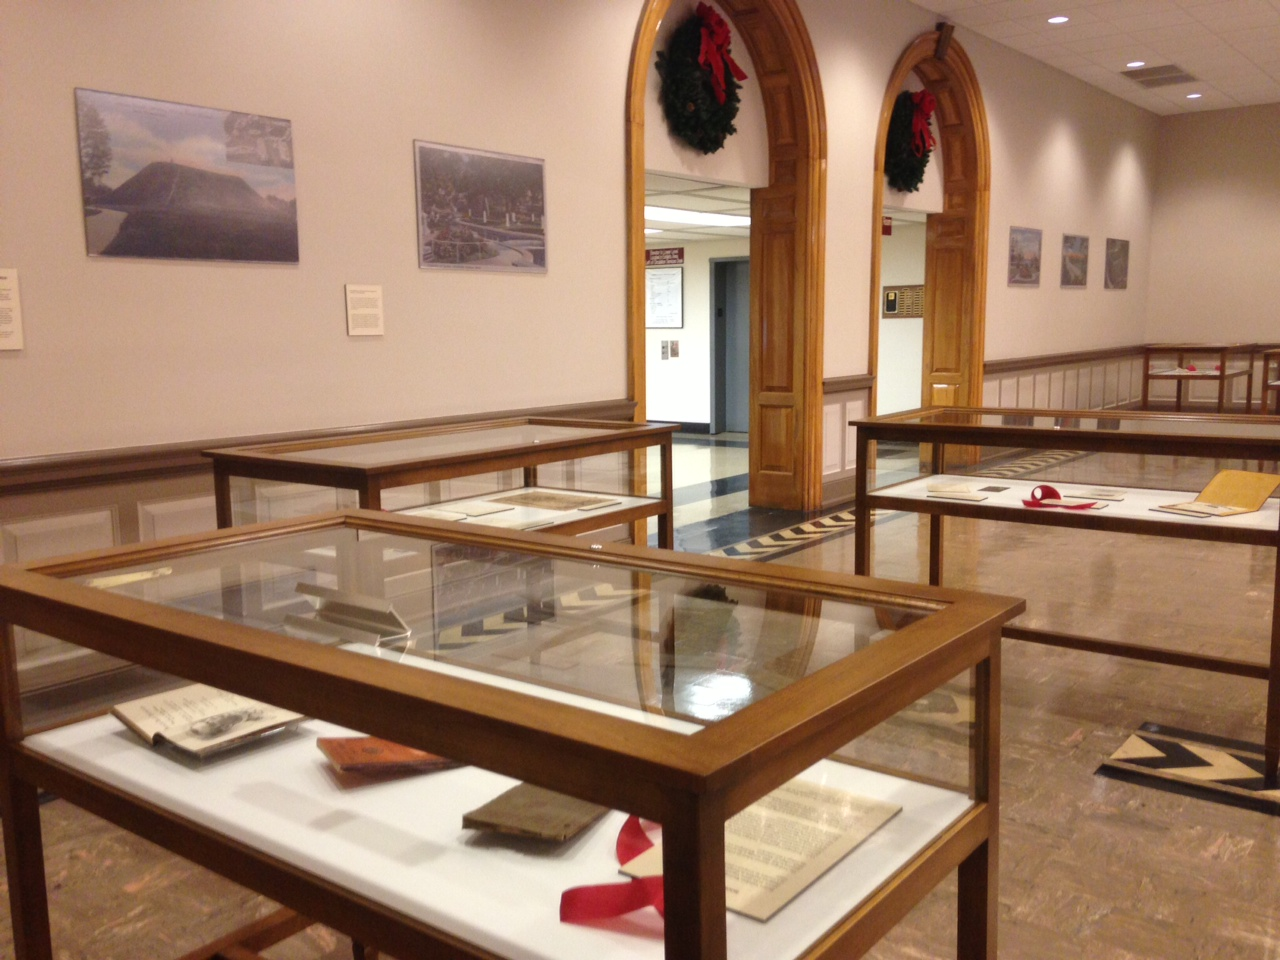 Tuskegee Institute display up in Gorgas during January   What s Cool     Tuskegee